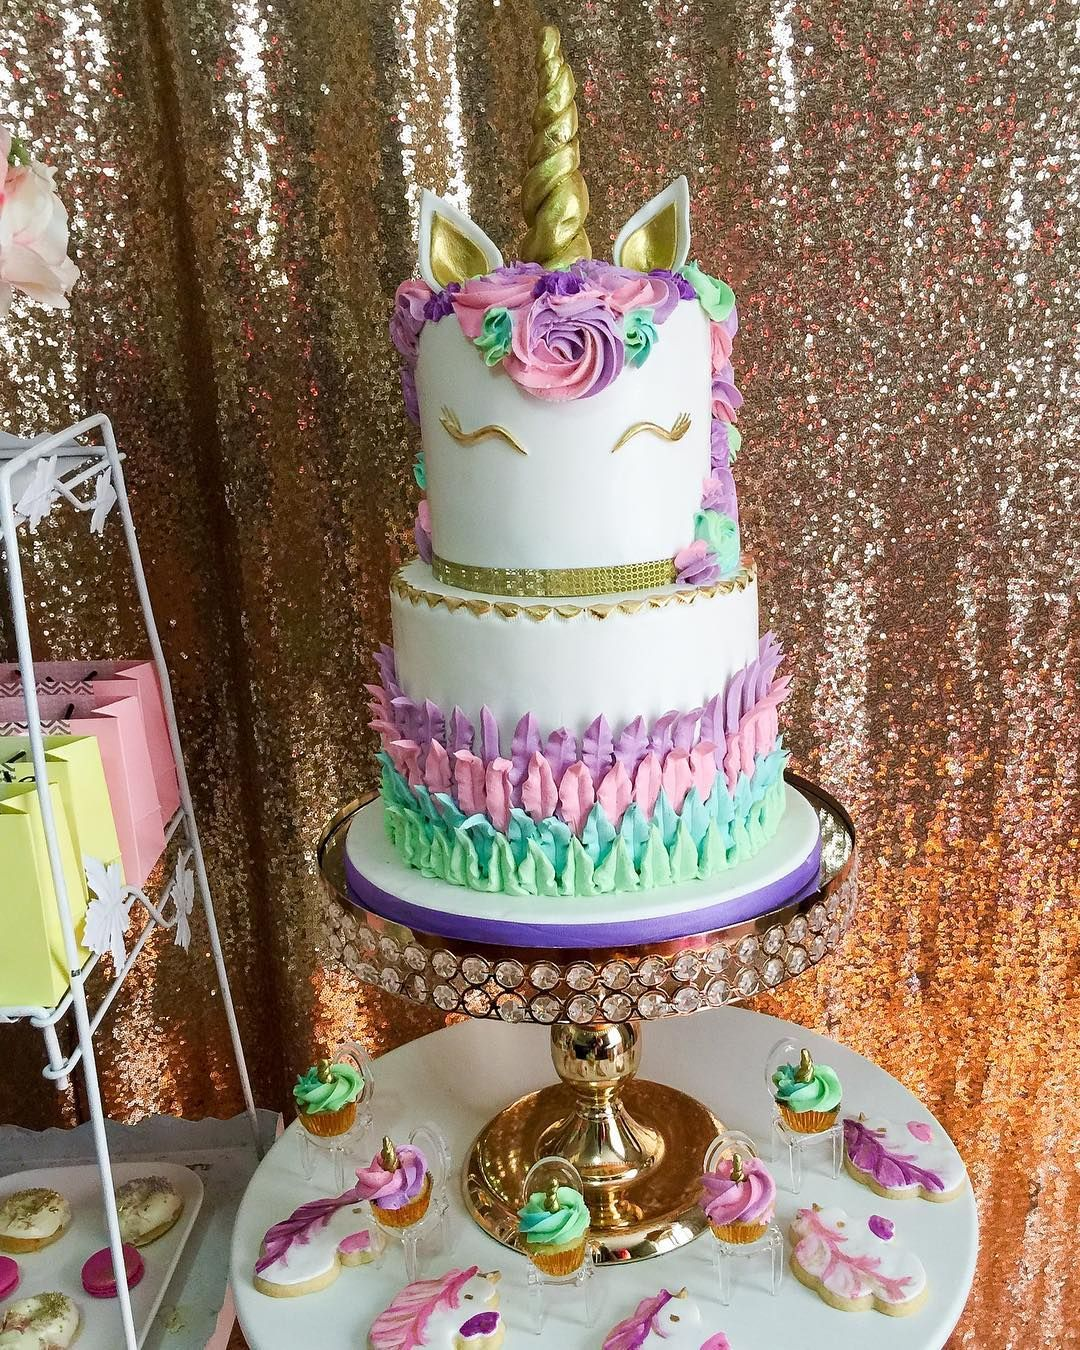 100 Amazing celebration cakes for all occasions - birthday cake ideas ,Impressive cakes ,anniversary cakes #cake #cakephoto #cakeideas #birthdaycake #celebrationcake